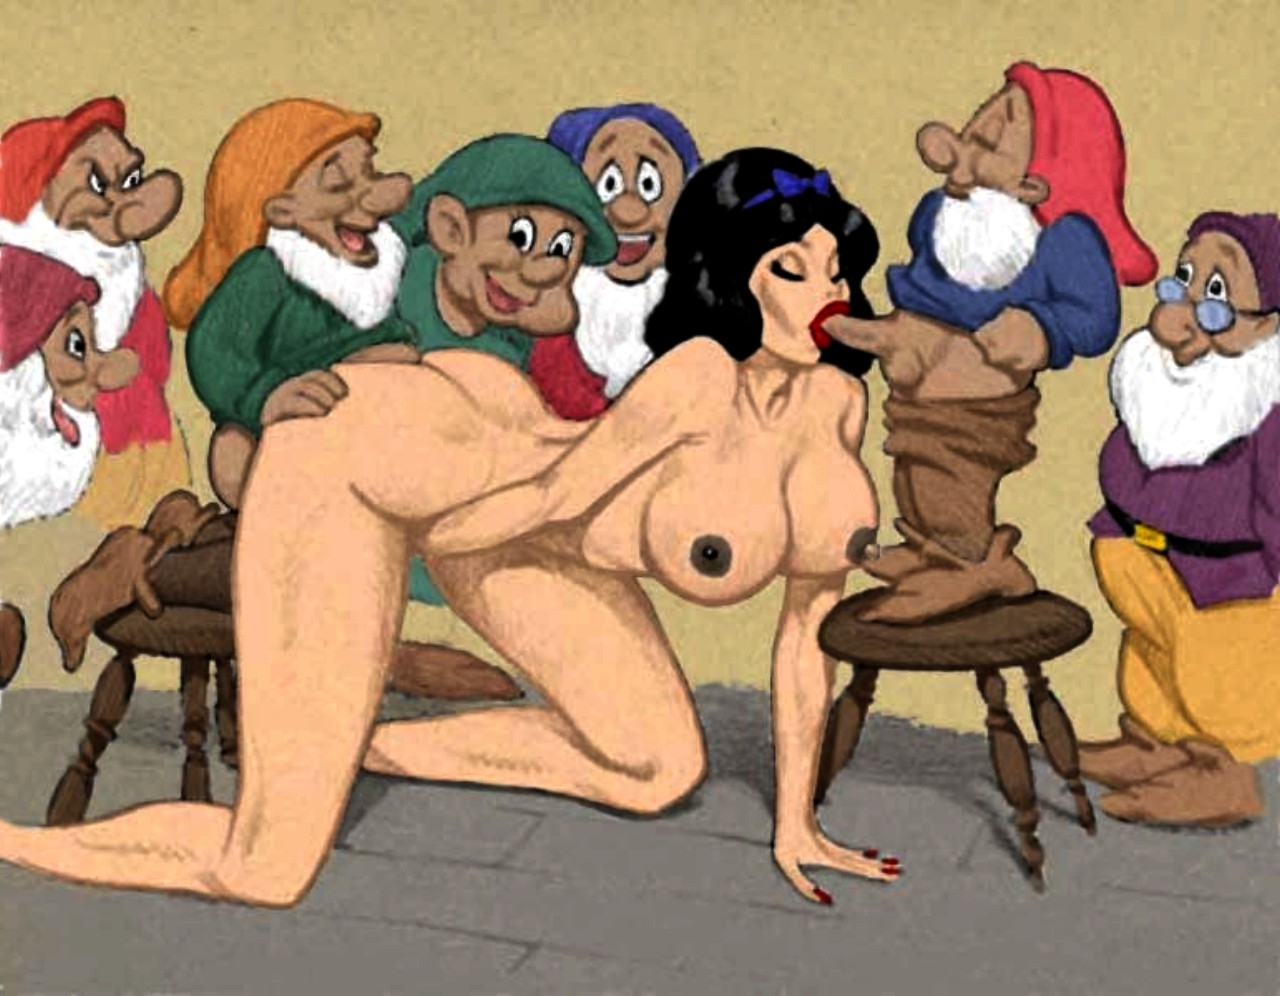 Snow white & 7 dwarfs xxx naked photo